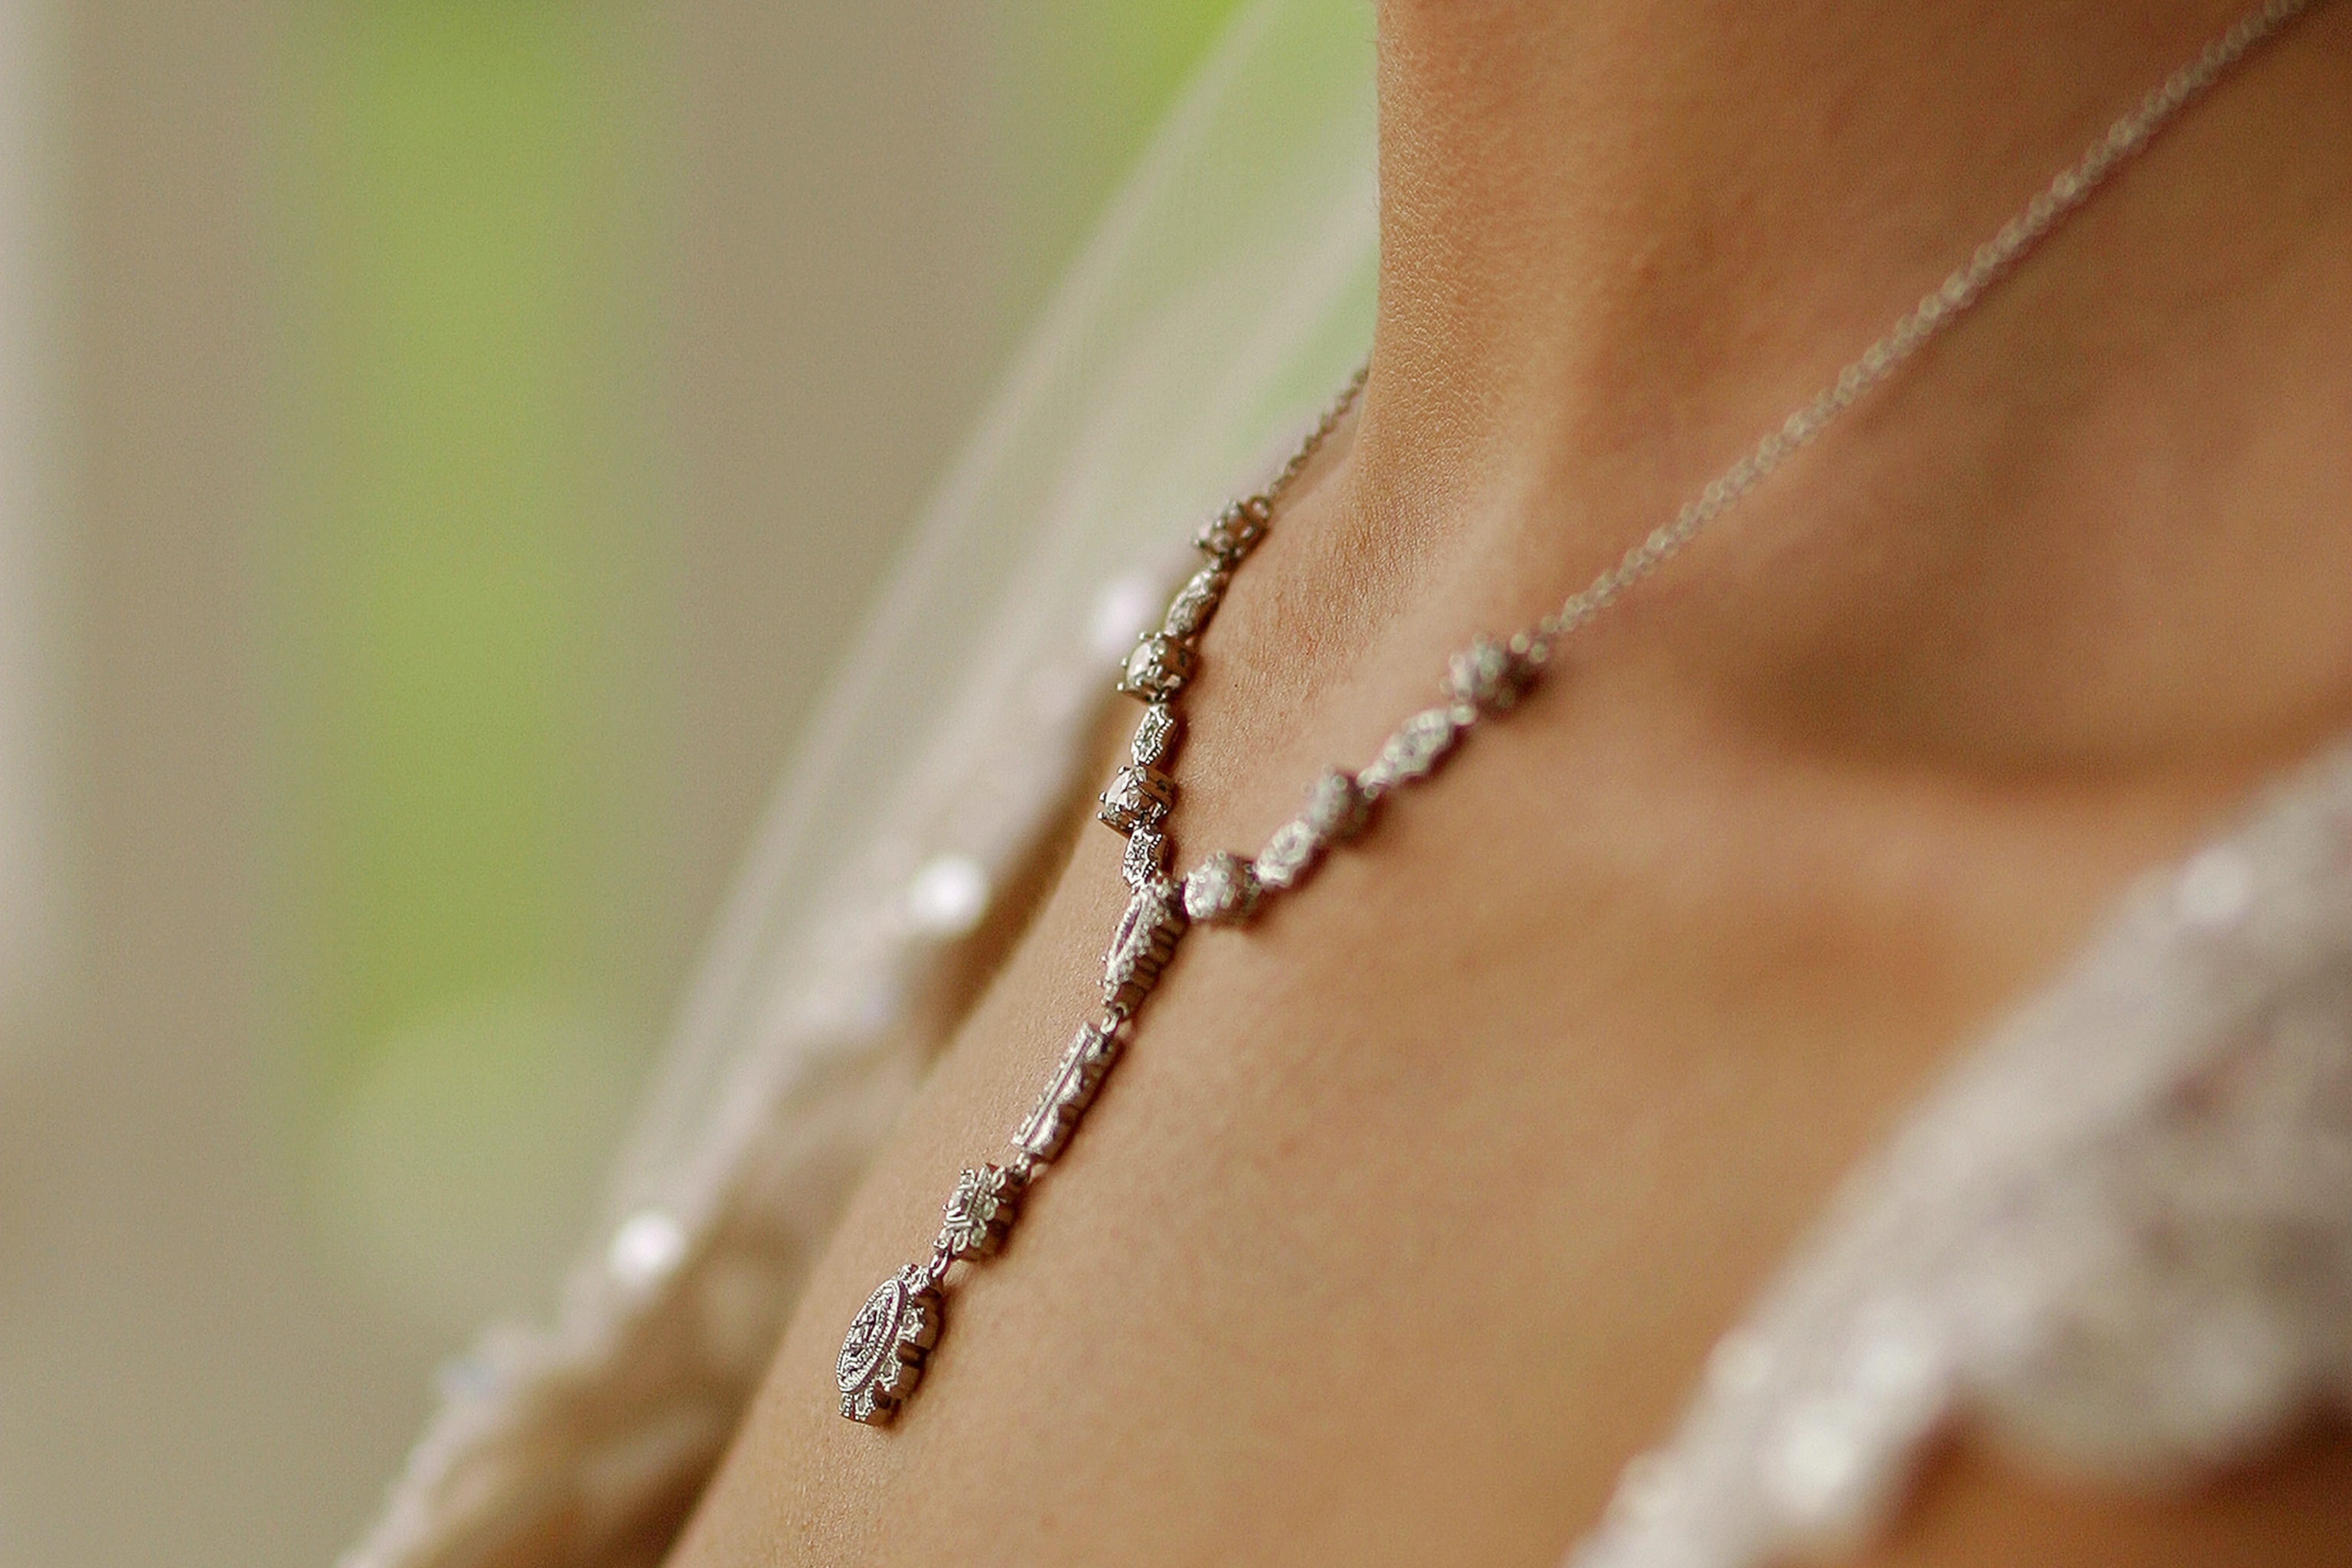 Jewelry, silver, Necklaces, Bride, Necklace, Mark zelinski photography